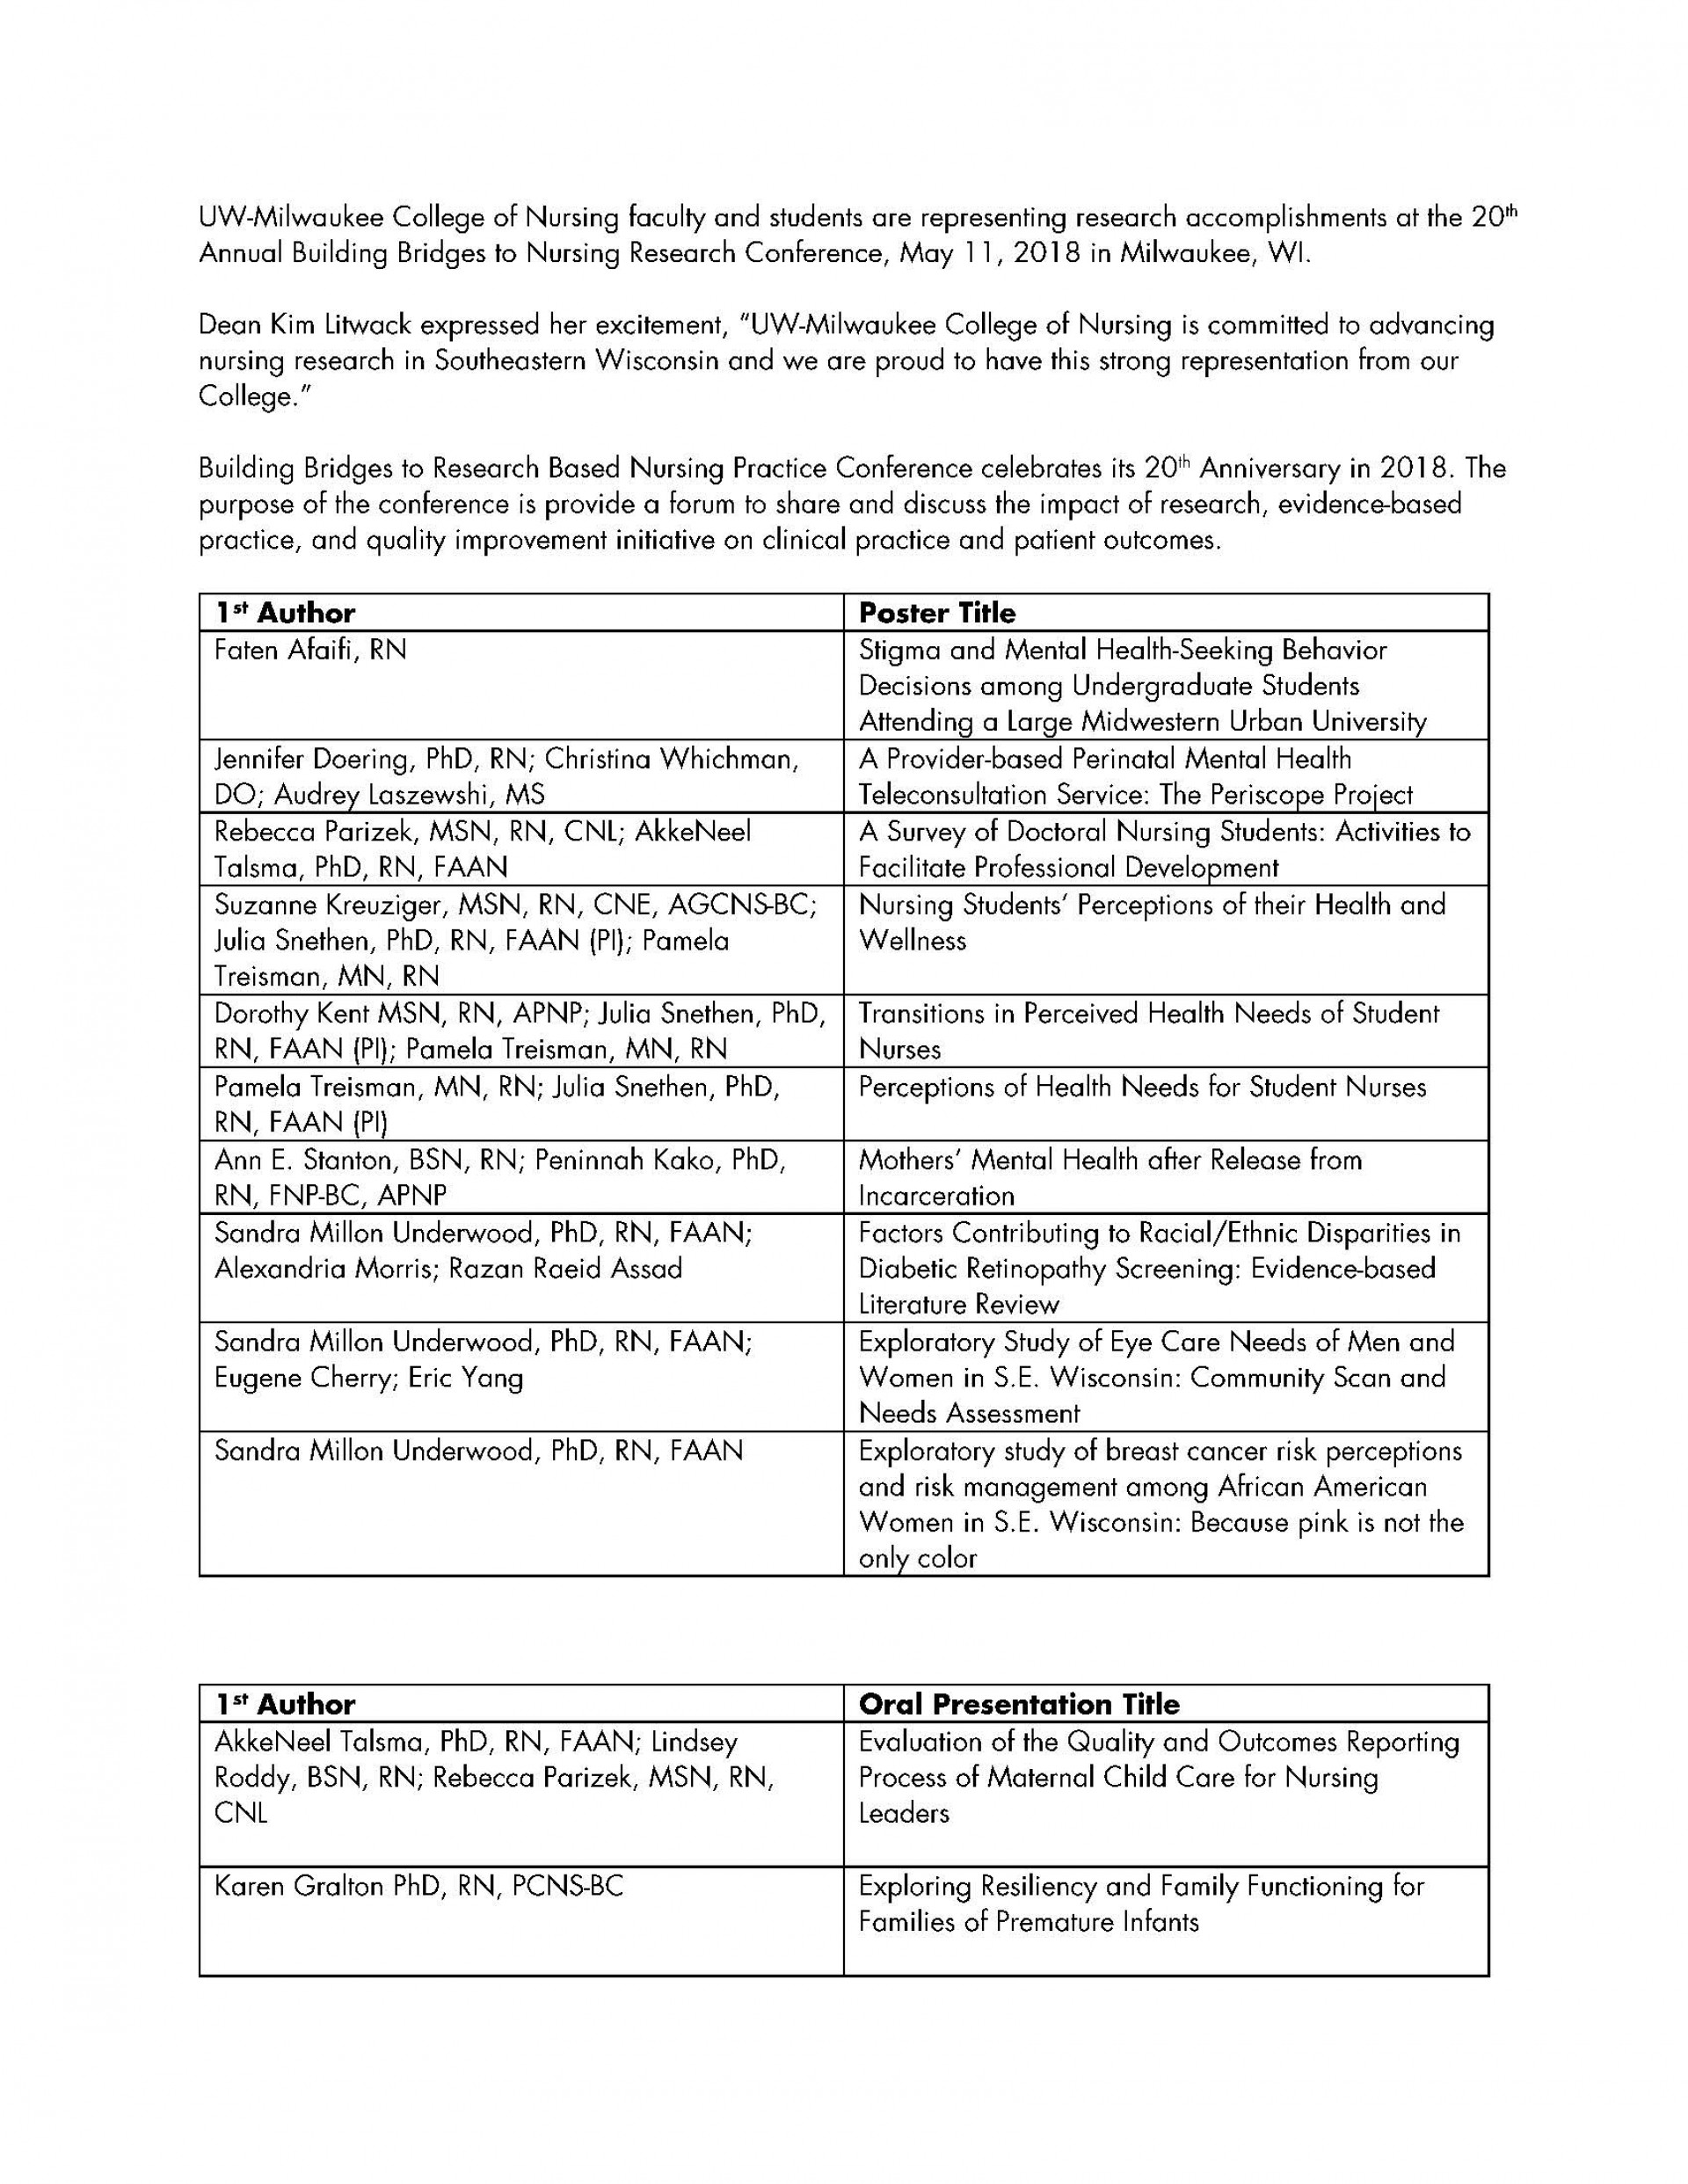 019 Nursing Research Paper Uwmweb Storycon 2018 Poster And Oral Authors Striking Pdf Sample Apa Format Example Proposal 1920